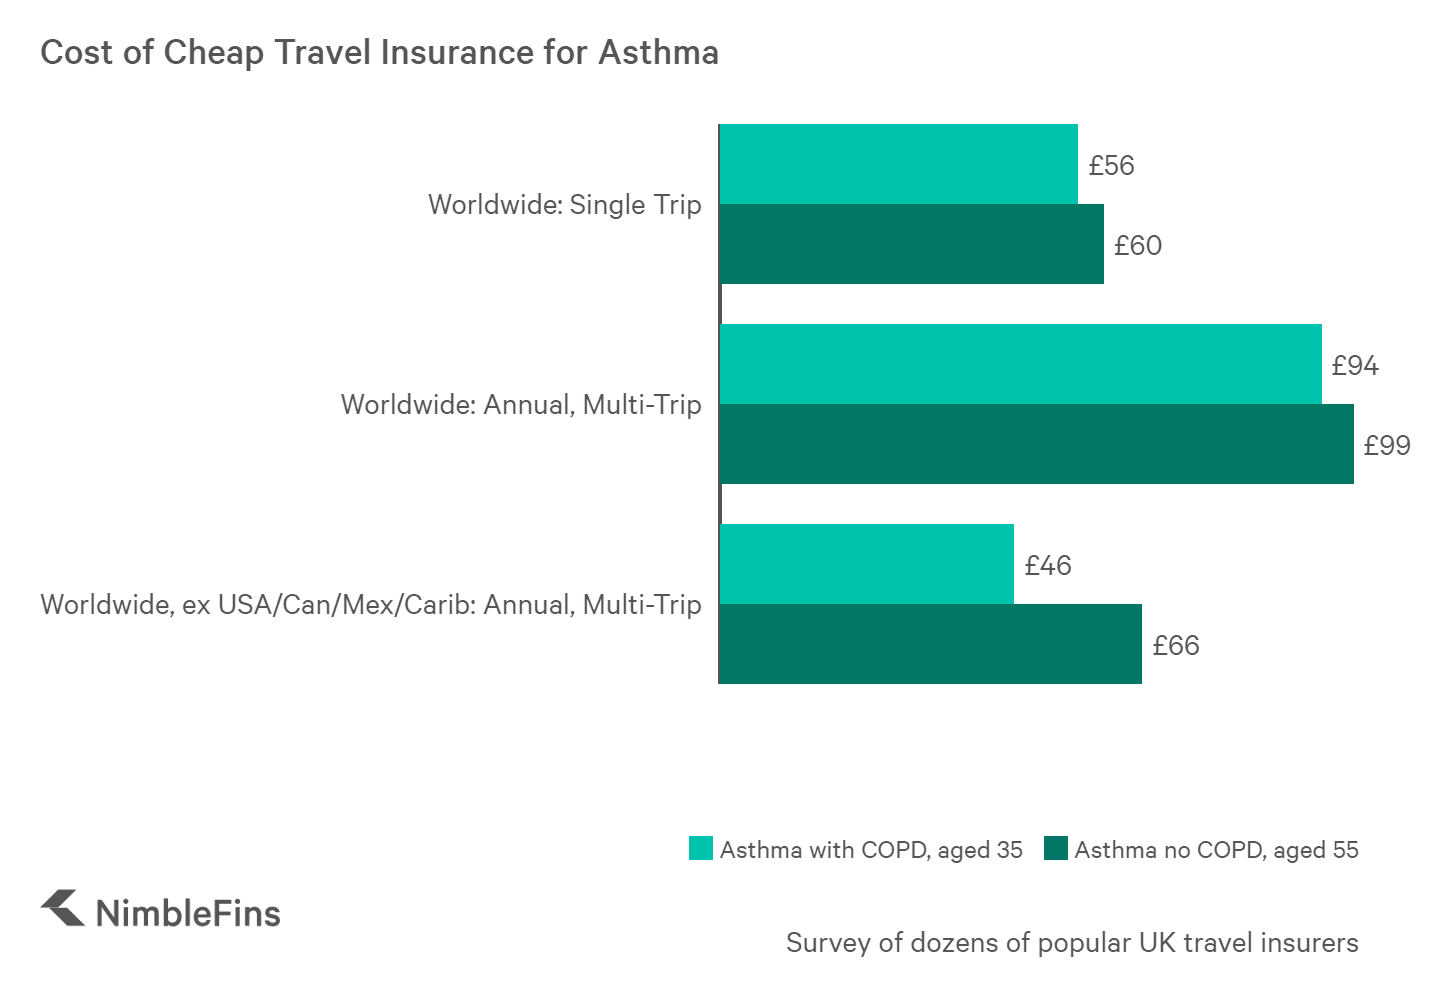 chart showing the cost of travel insurance for individuals with asthma and COPD